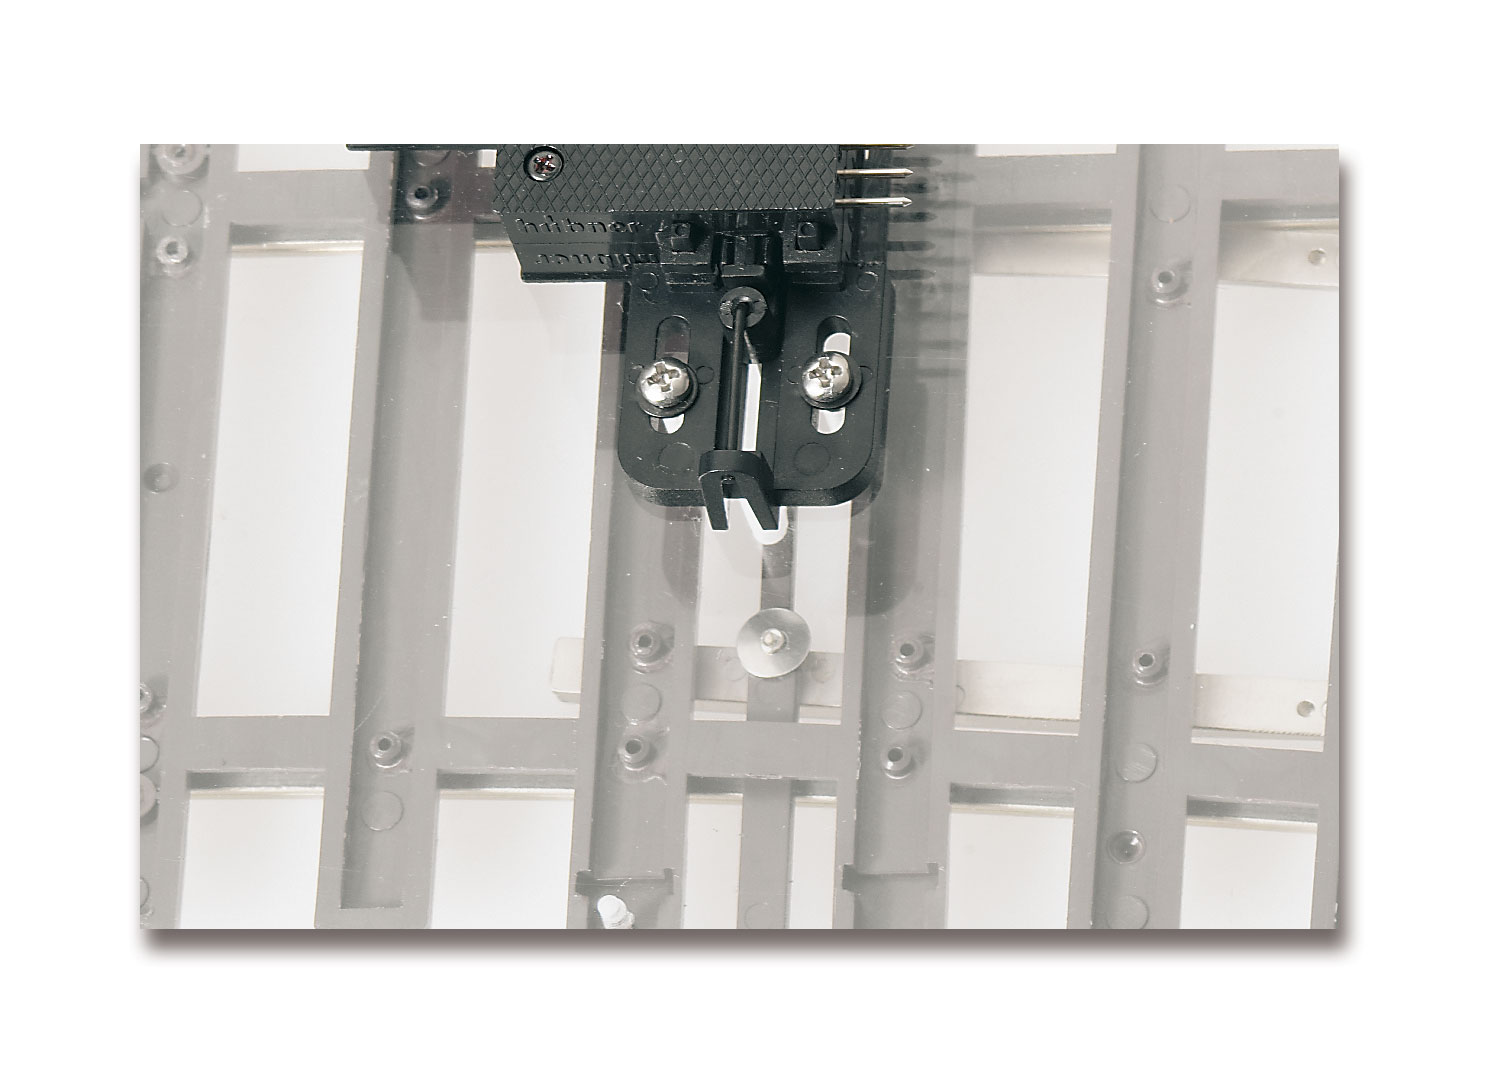 Conversion Set for Below-Baseboard Mechanism